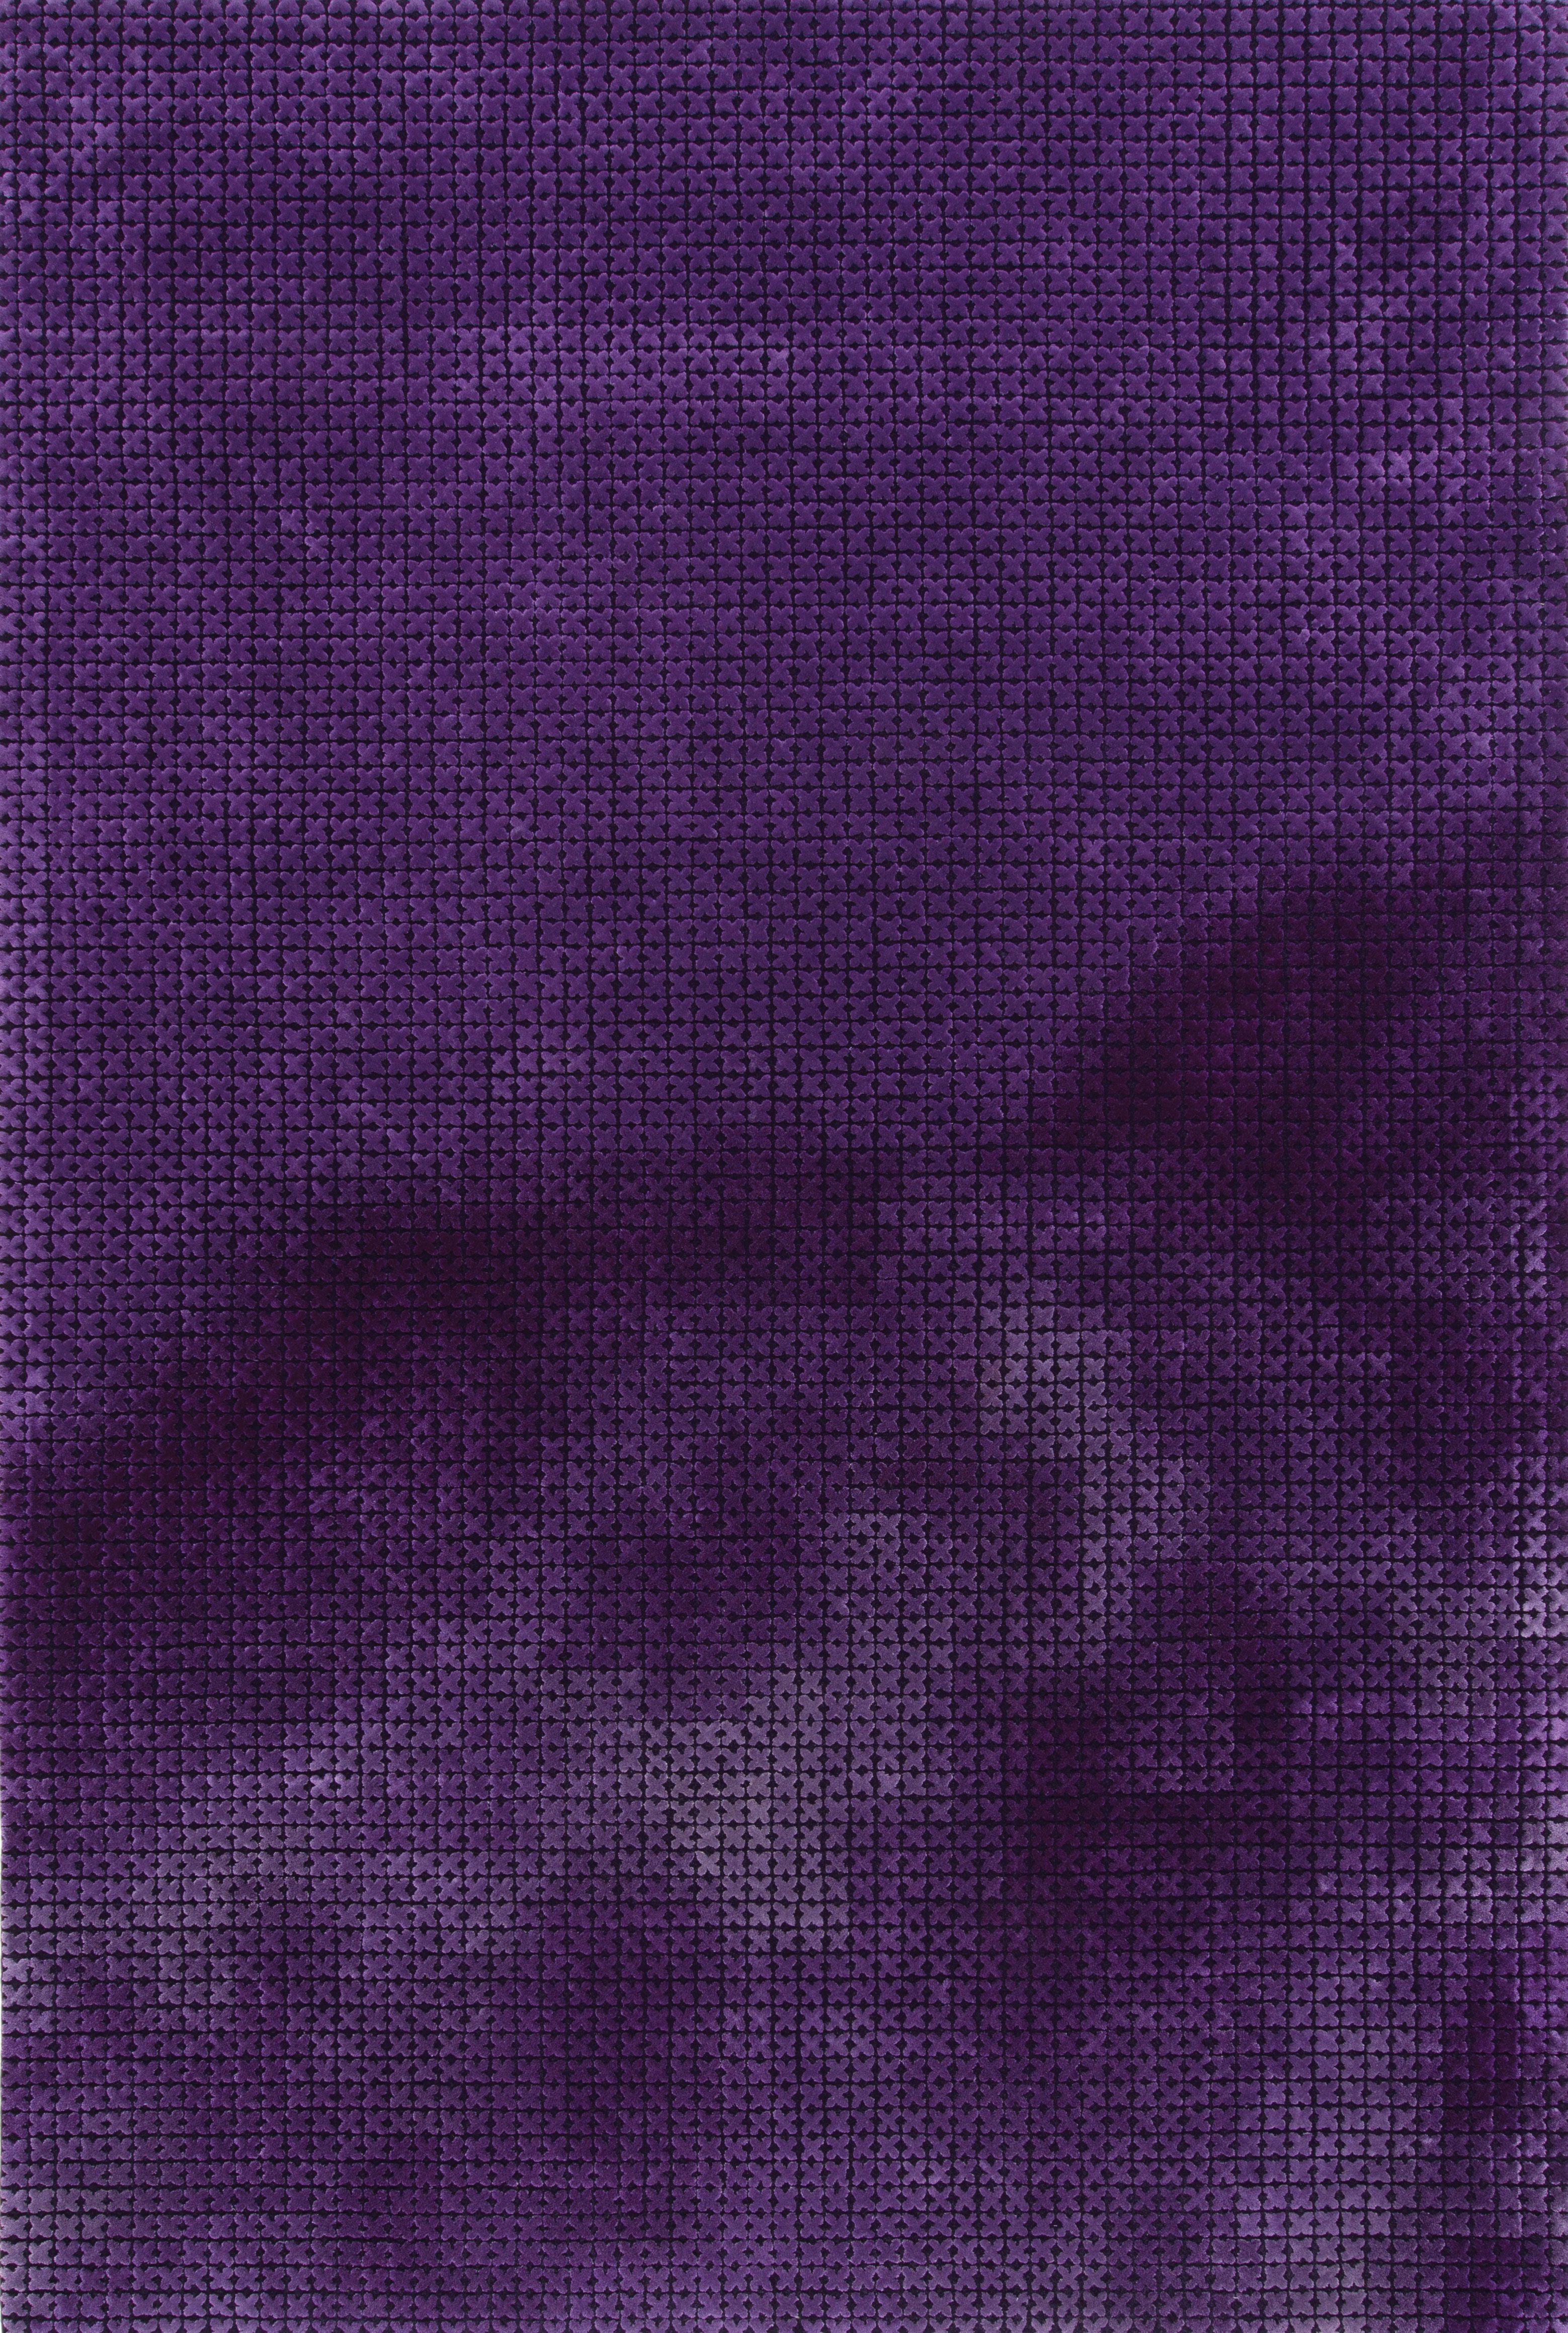 #Chroma #Sequences #Abstract #Canvas #Purple #Colors #Colours #Paint #Painting #Visualeffect